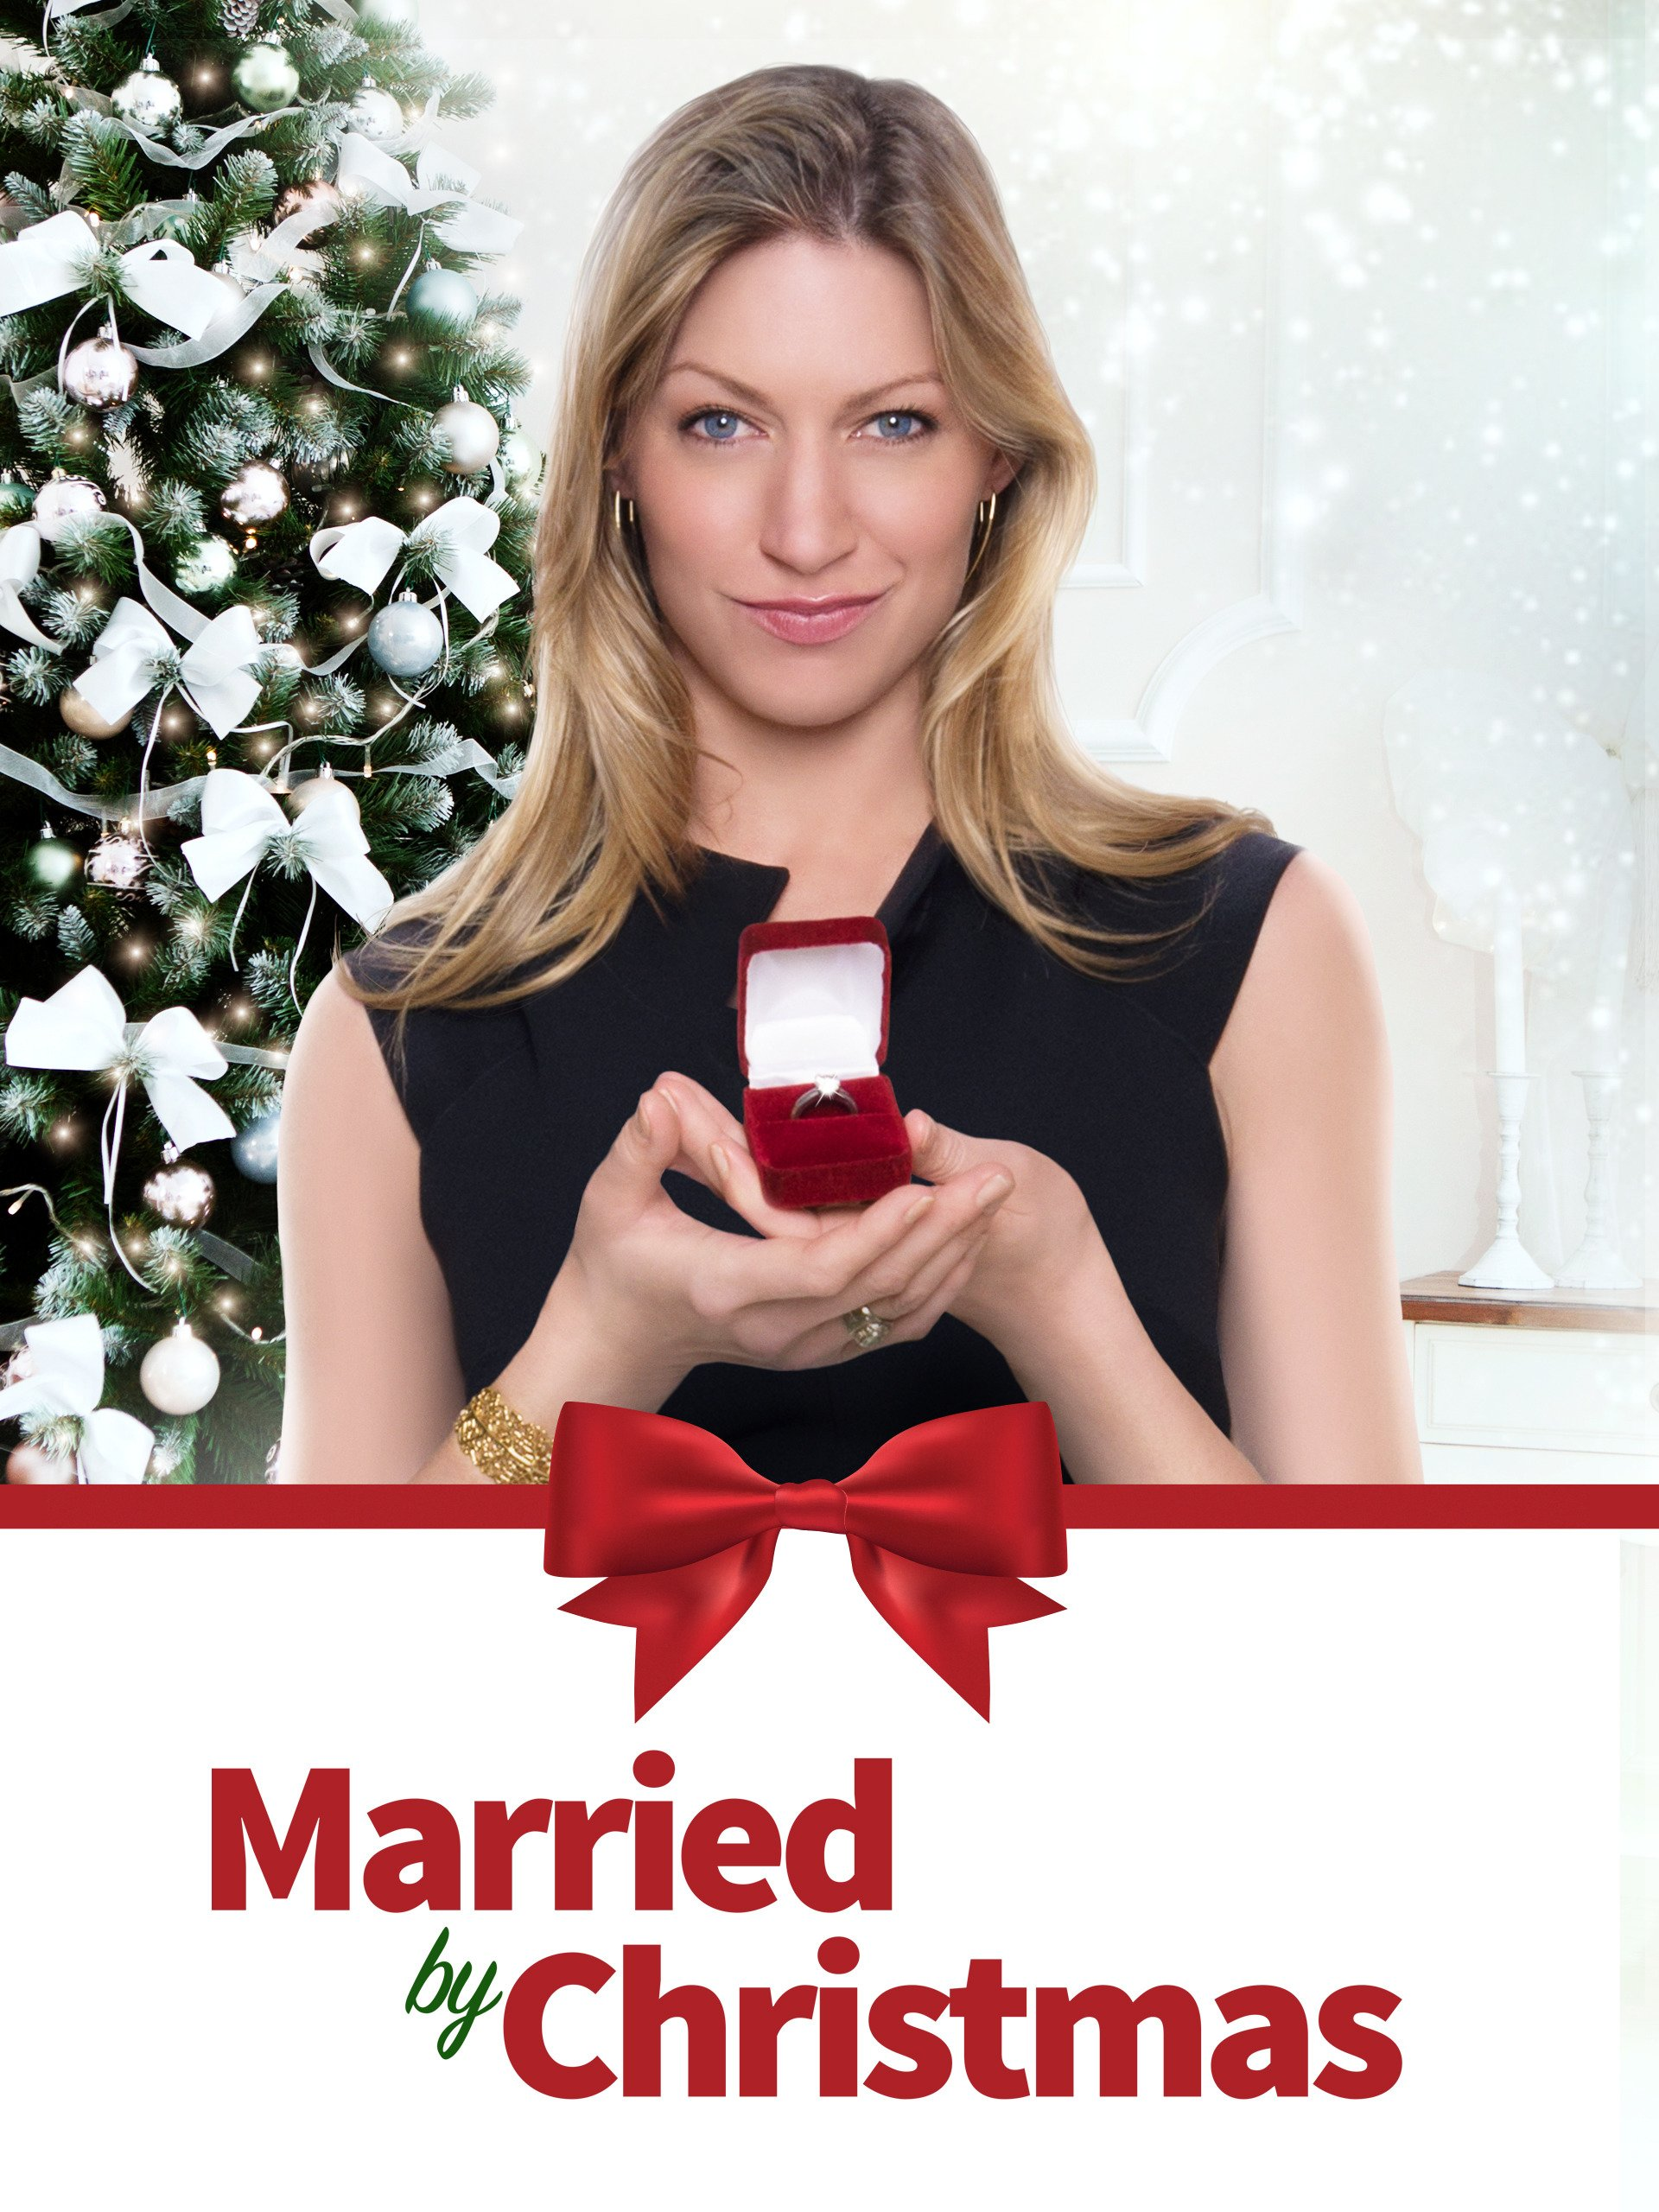 Image result for married by christmas